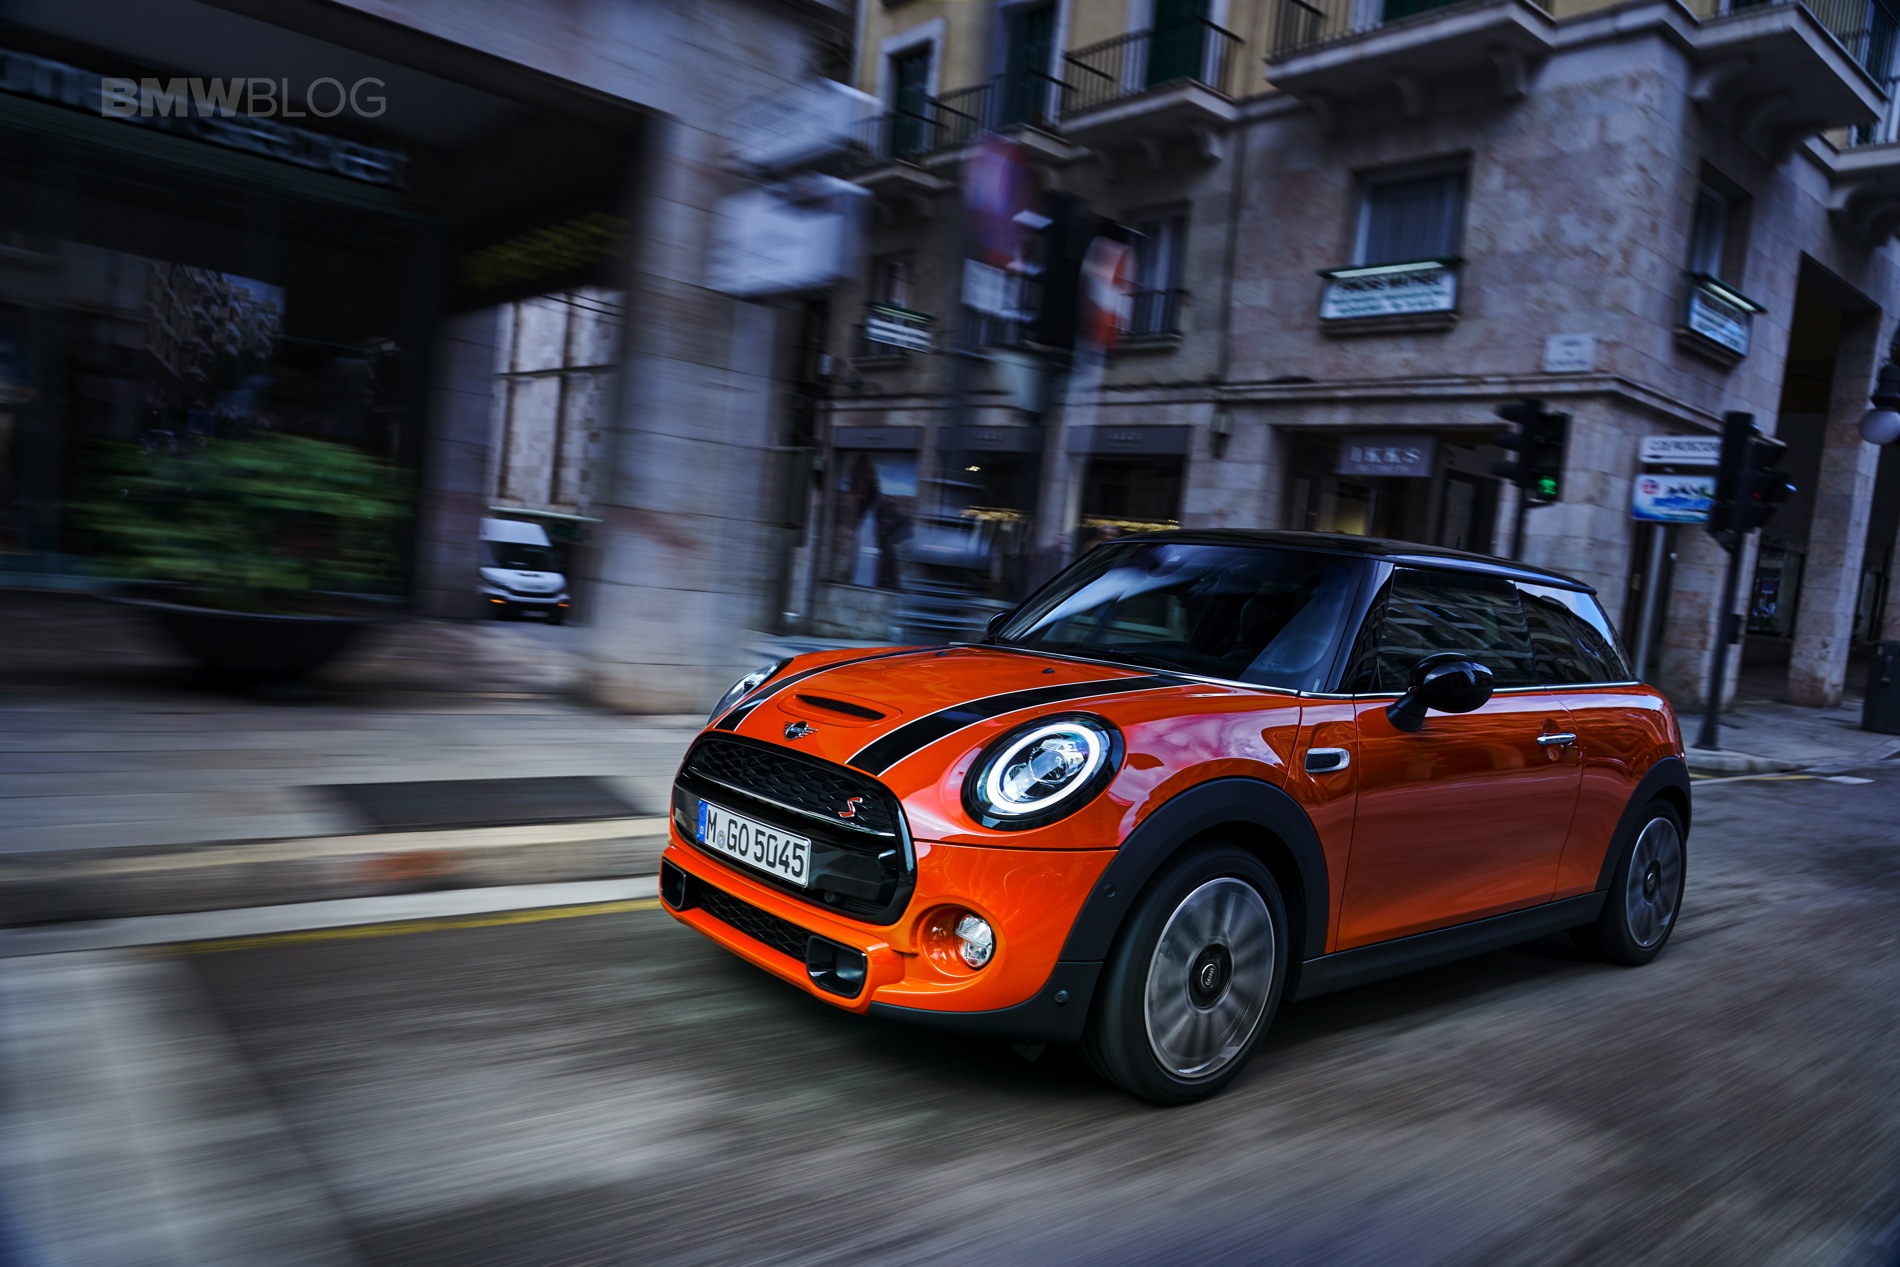 MINI Cooper 3 door facelift test drive 101